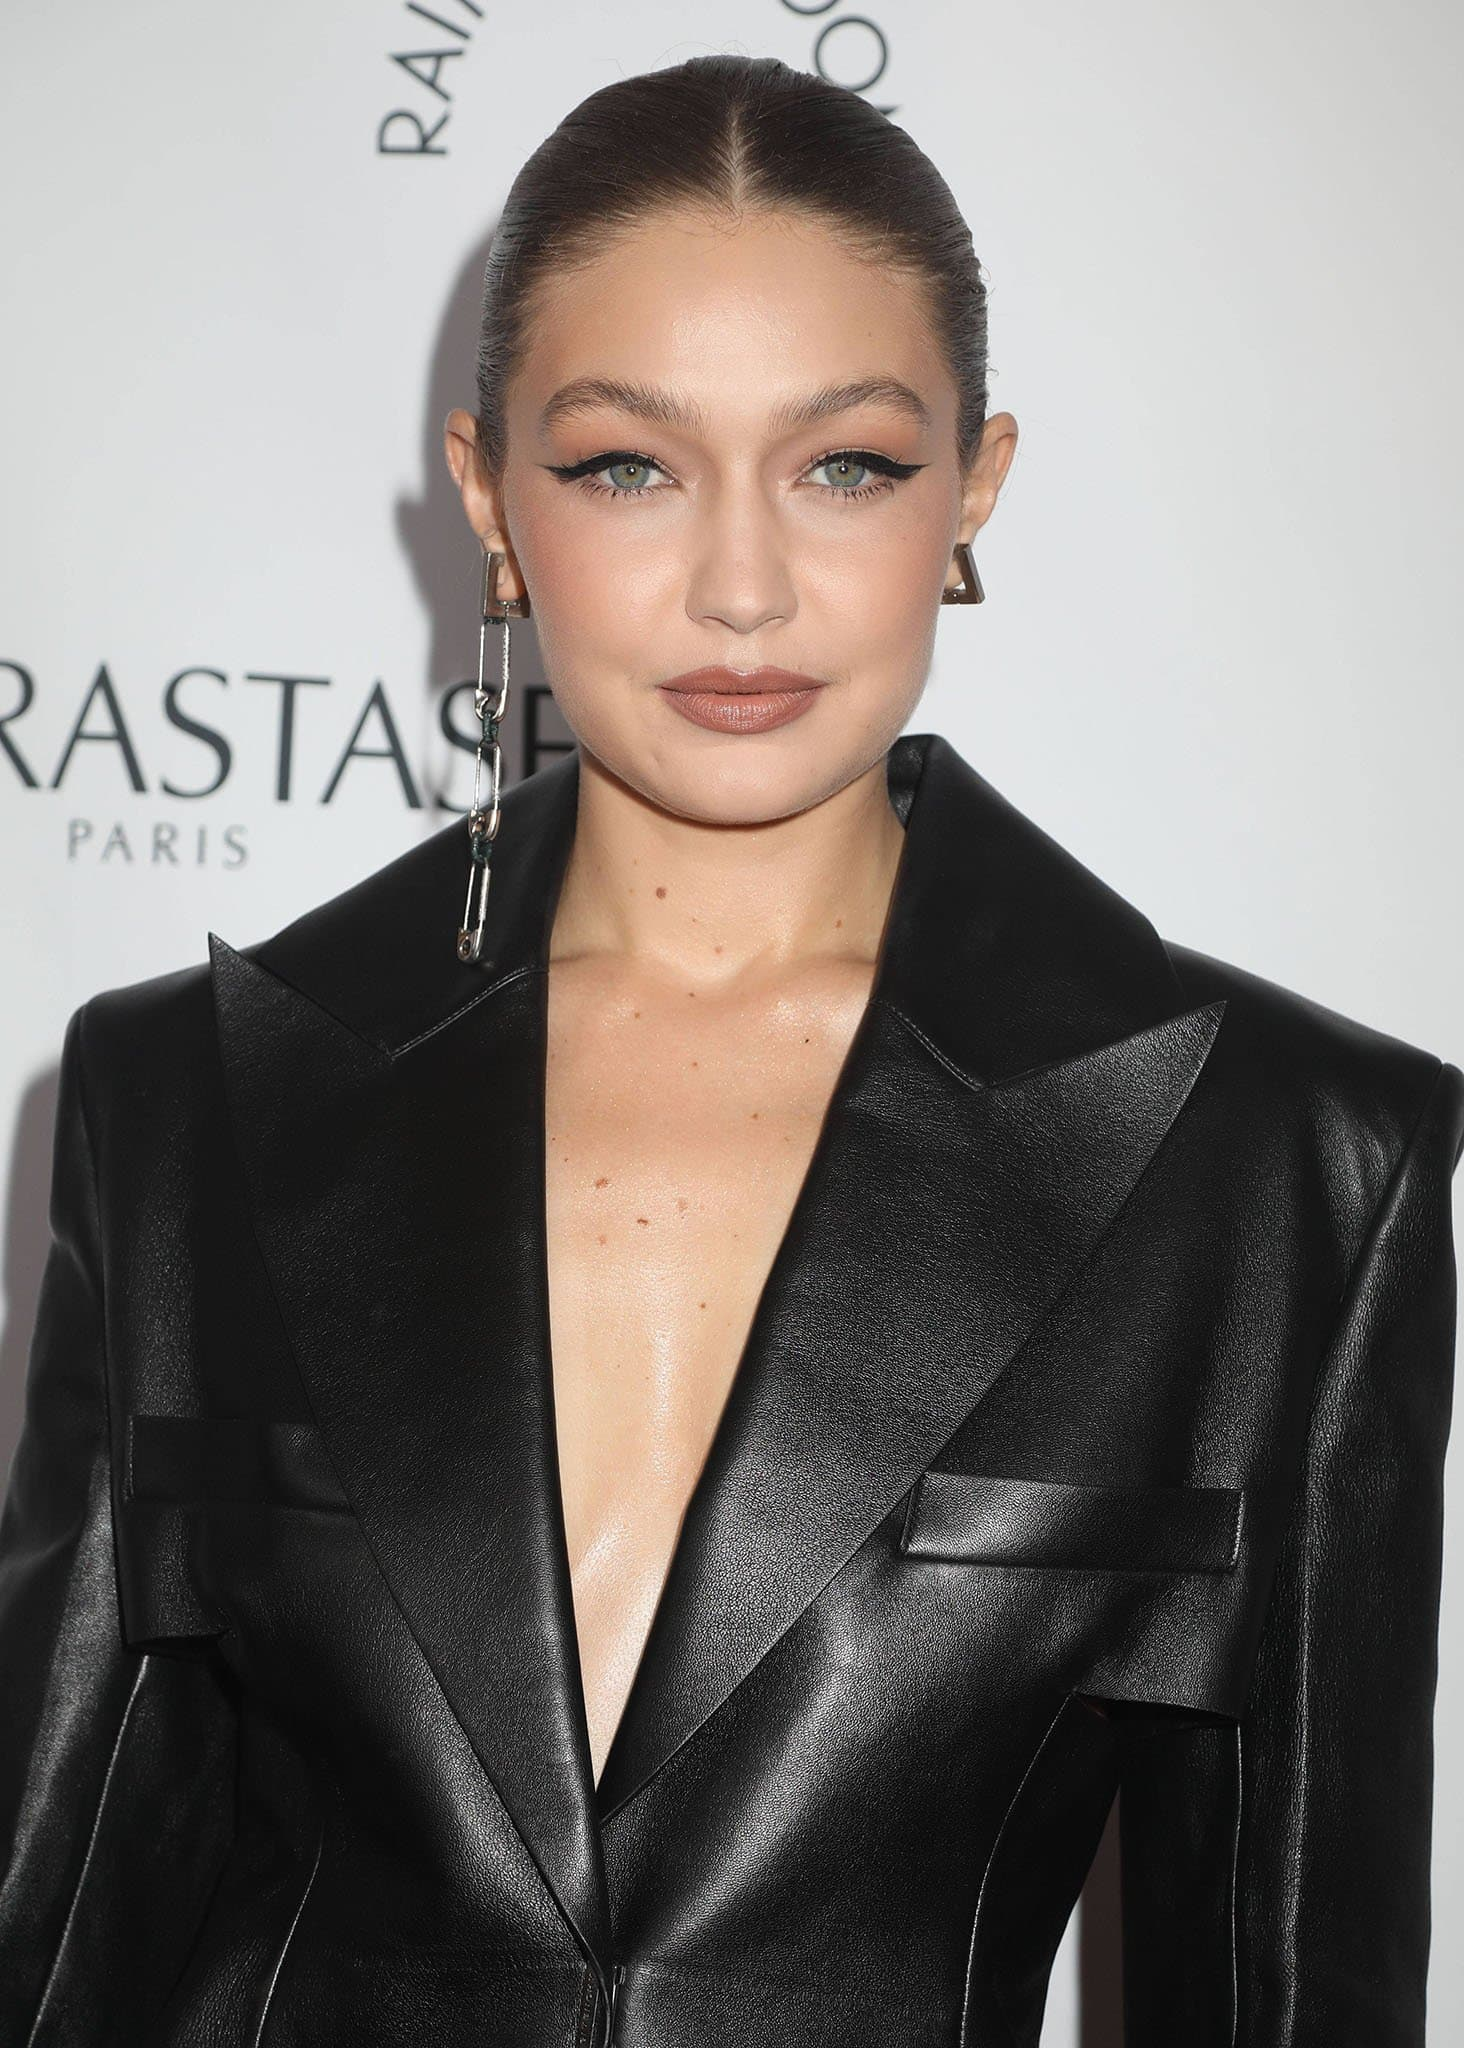 Gigi Hadid styles her hair in a slick braided ponytail and wears winged eyeliner and mauve lipstick